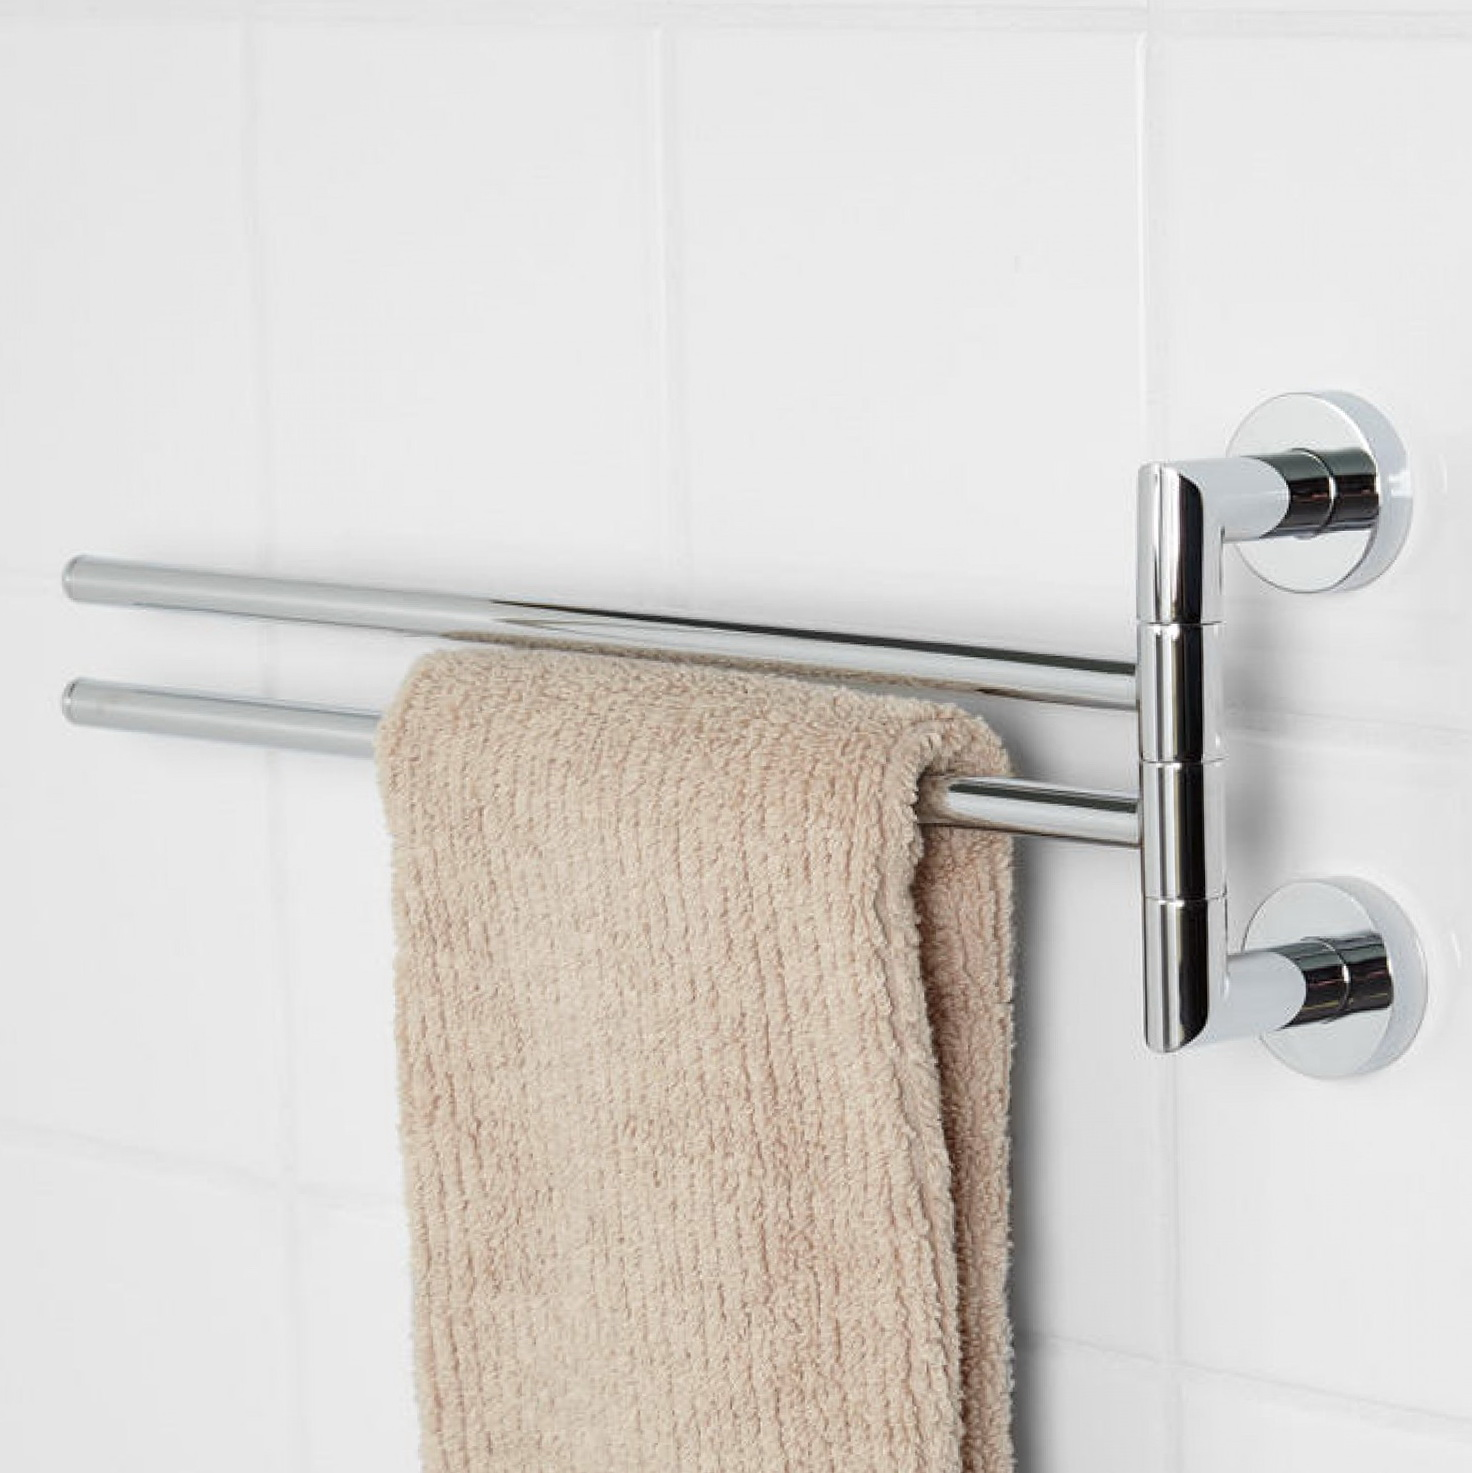 Bathroom Towel Bars Home Depot